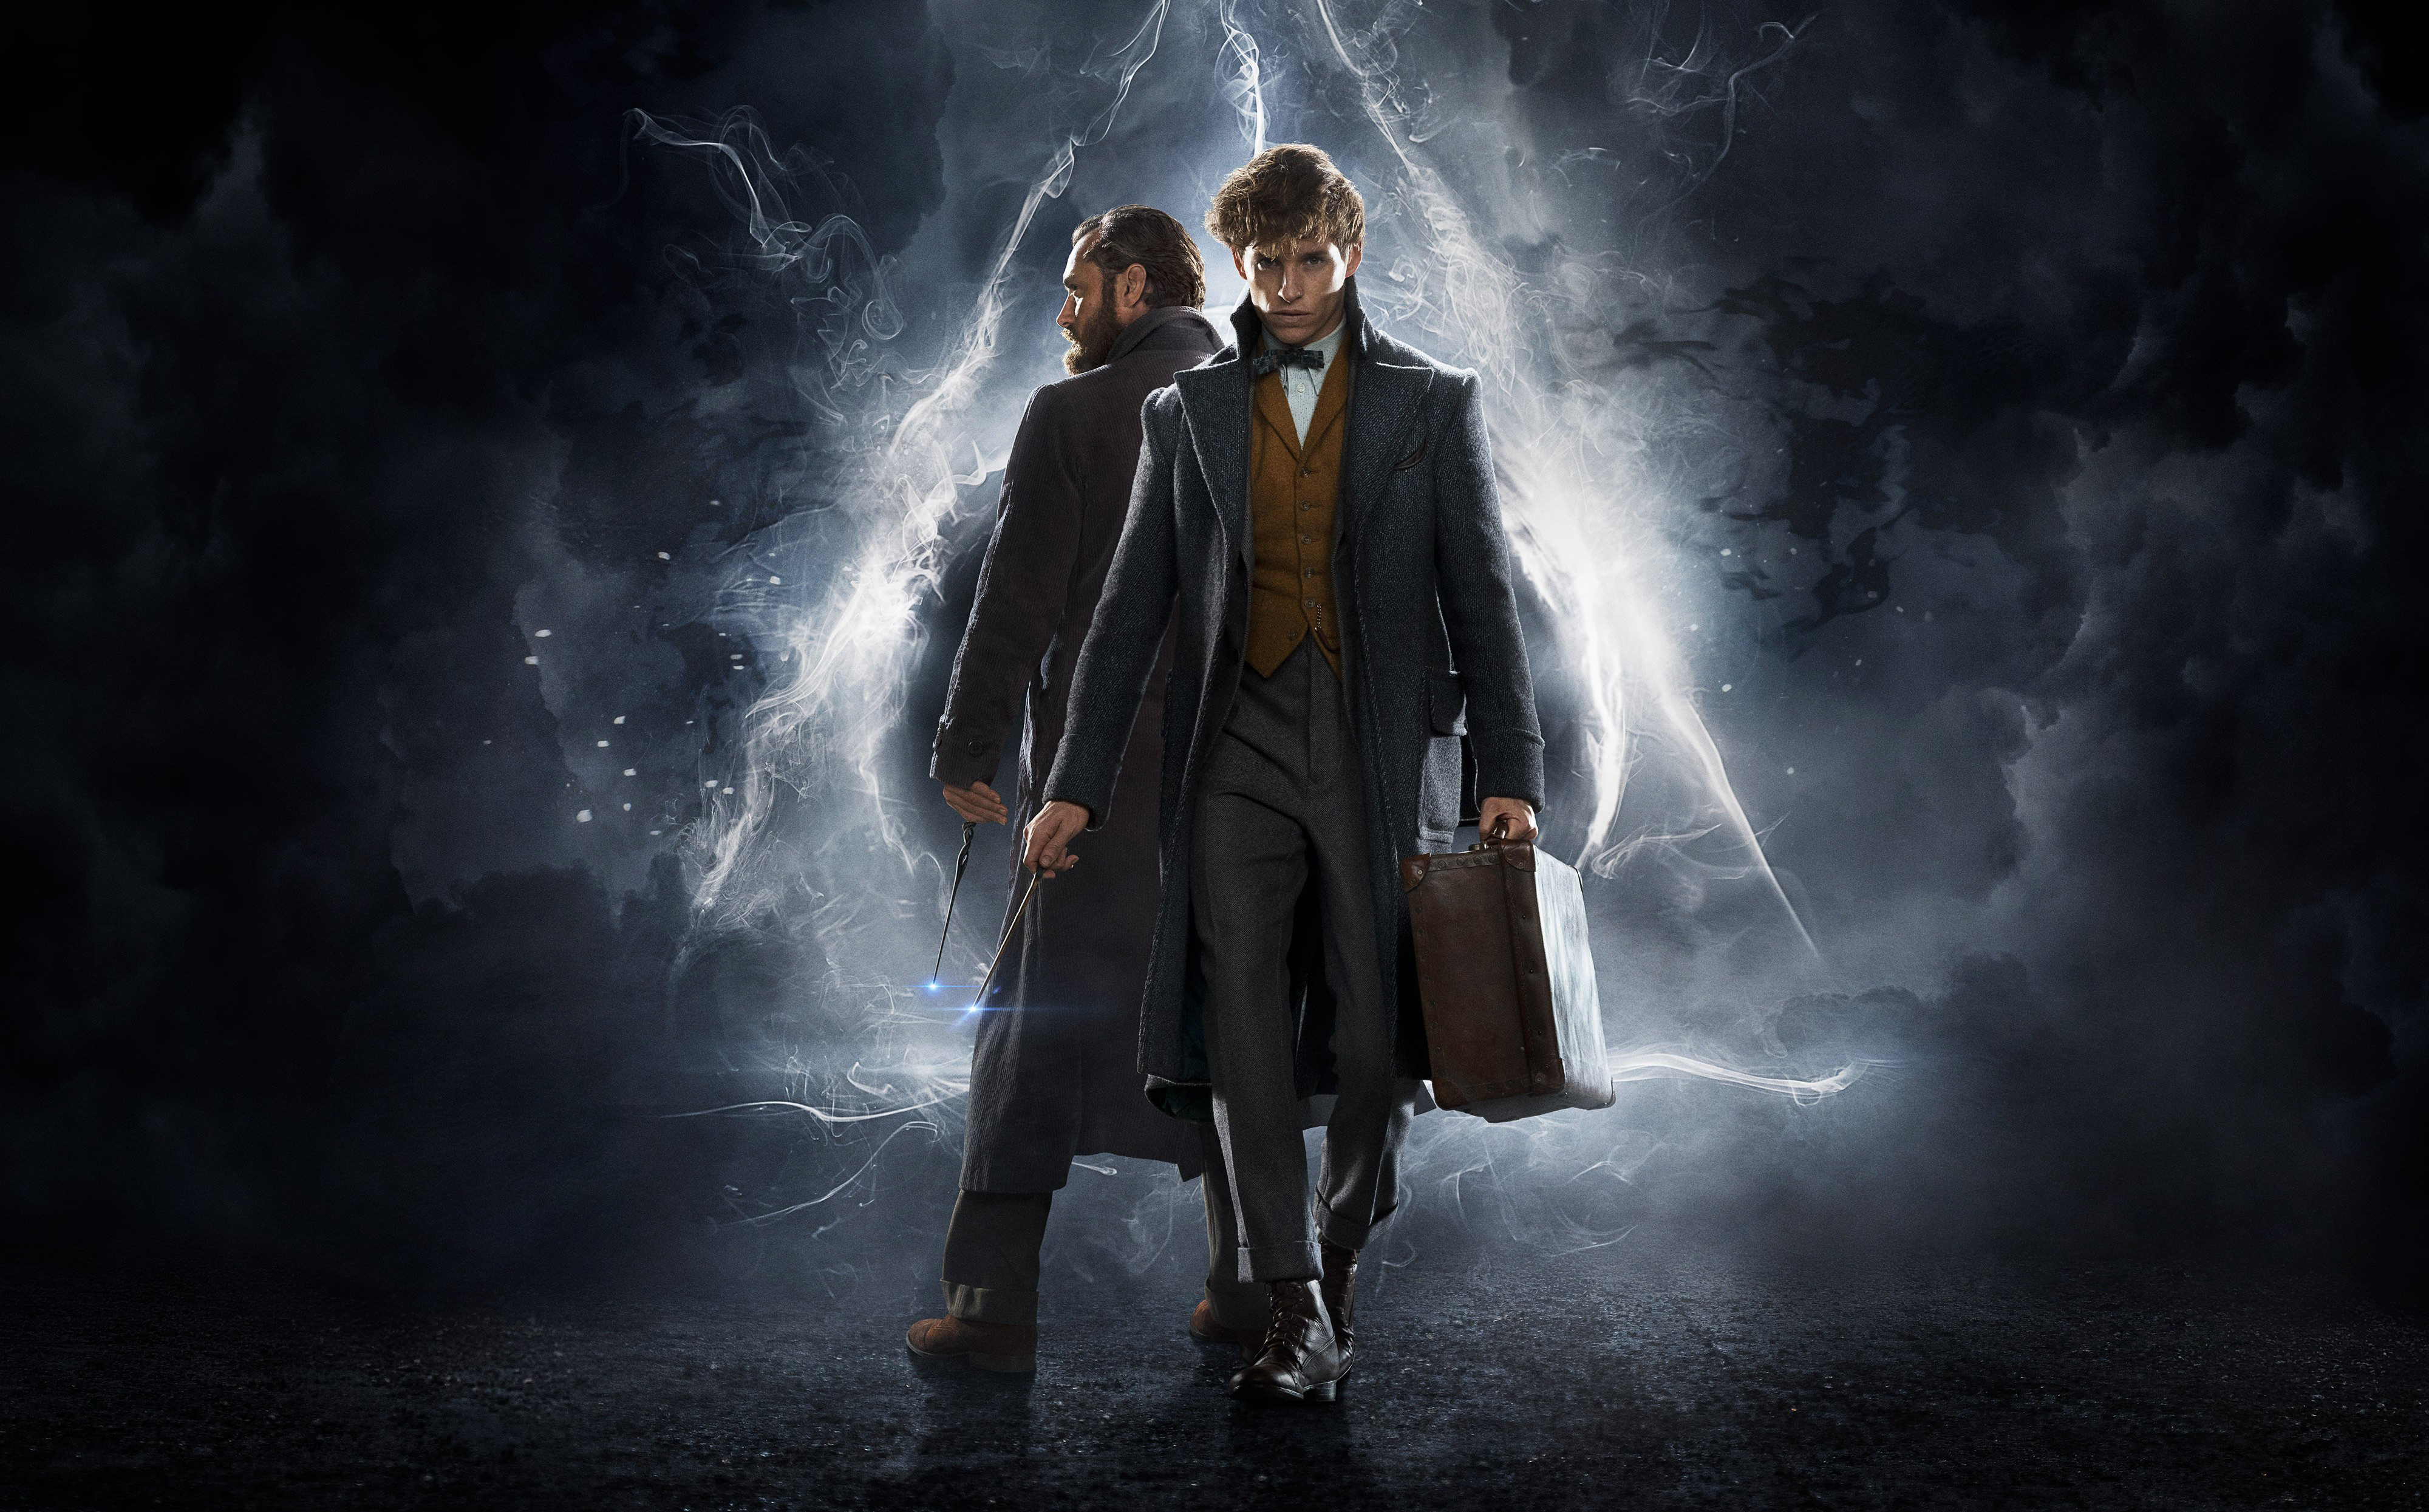 fantastic beasts 2 4k hd movies 4k wallpapers images backgrounds photos and pictures fantastic beasts 2 4k hd movies 4k